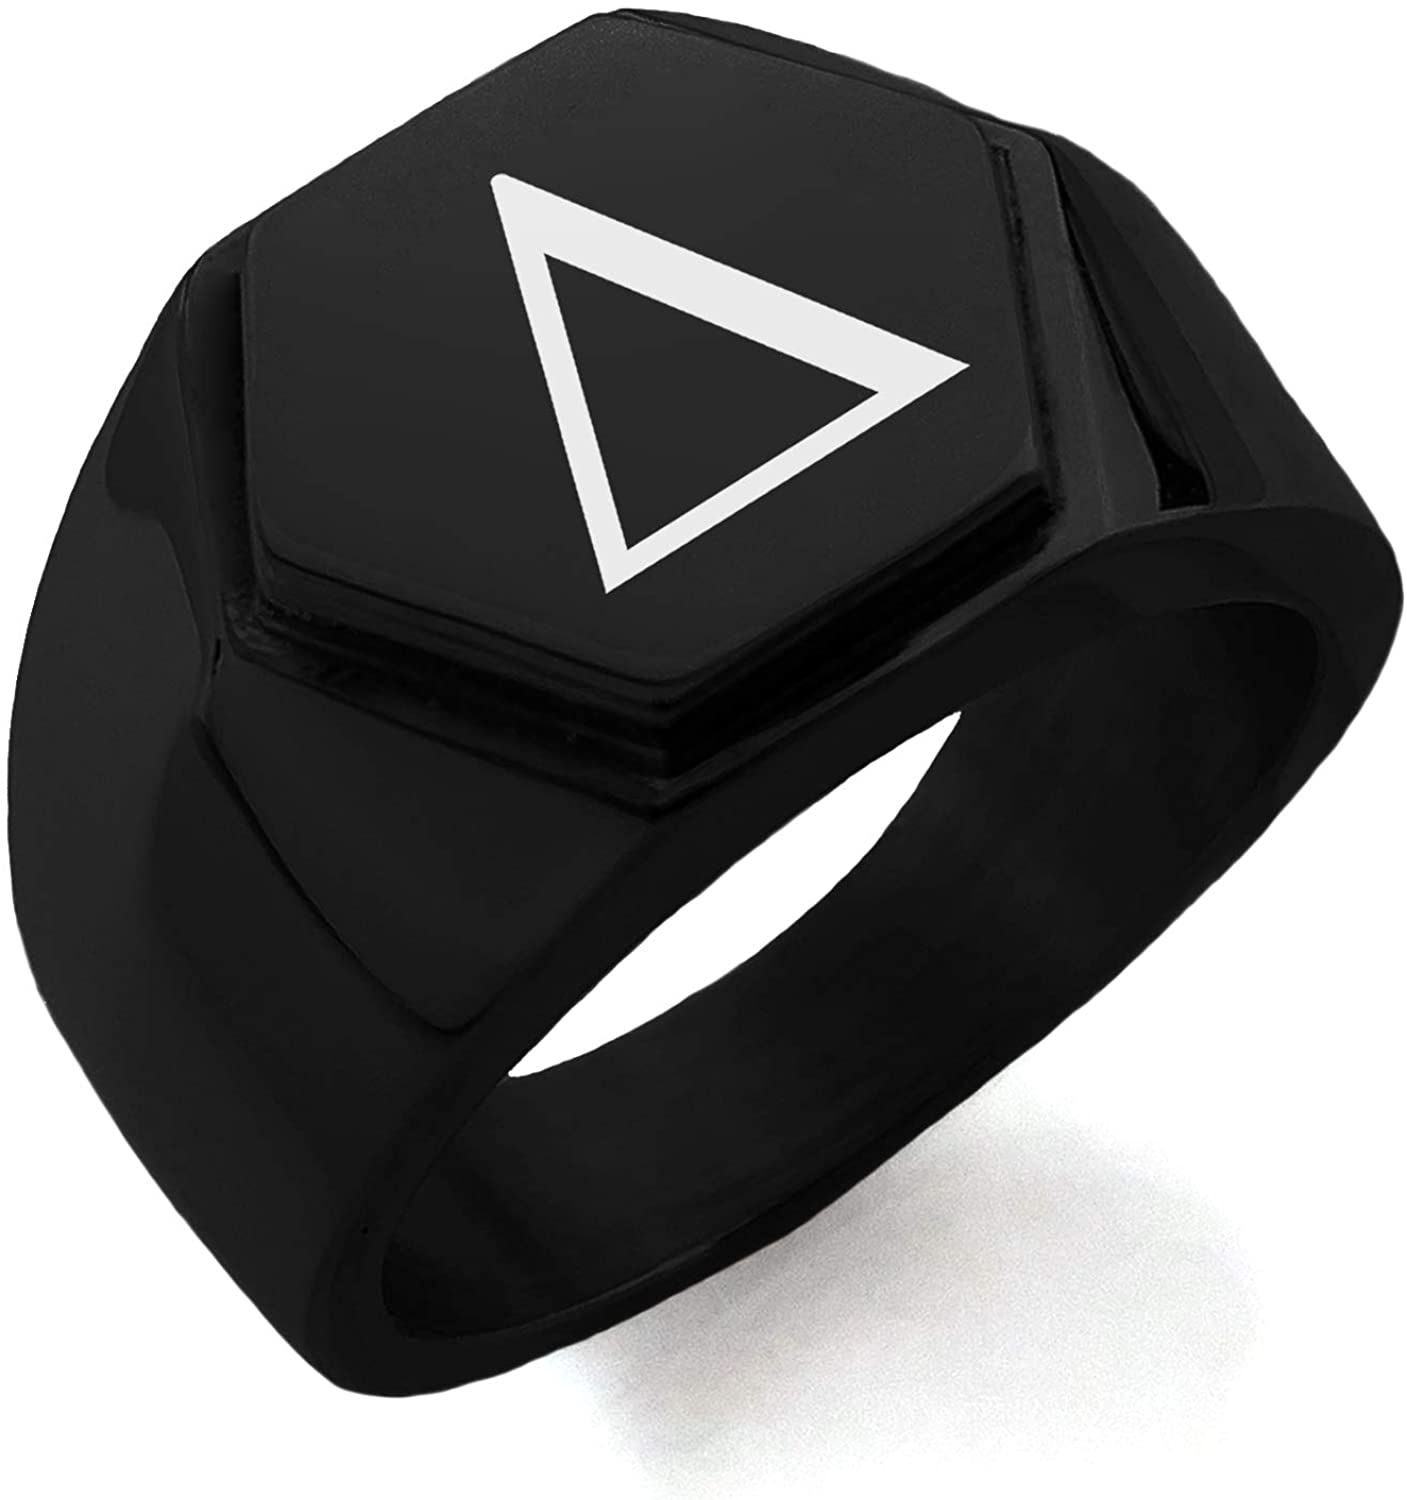 Stainless Steel Delta Mathematical Hexagon Crest Flat Top Biker Style Polished Ring